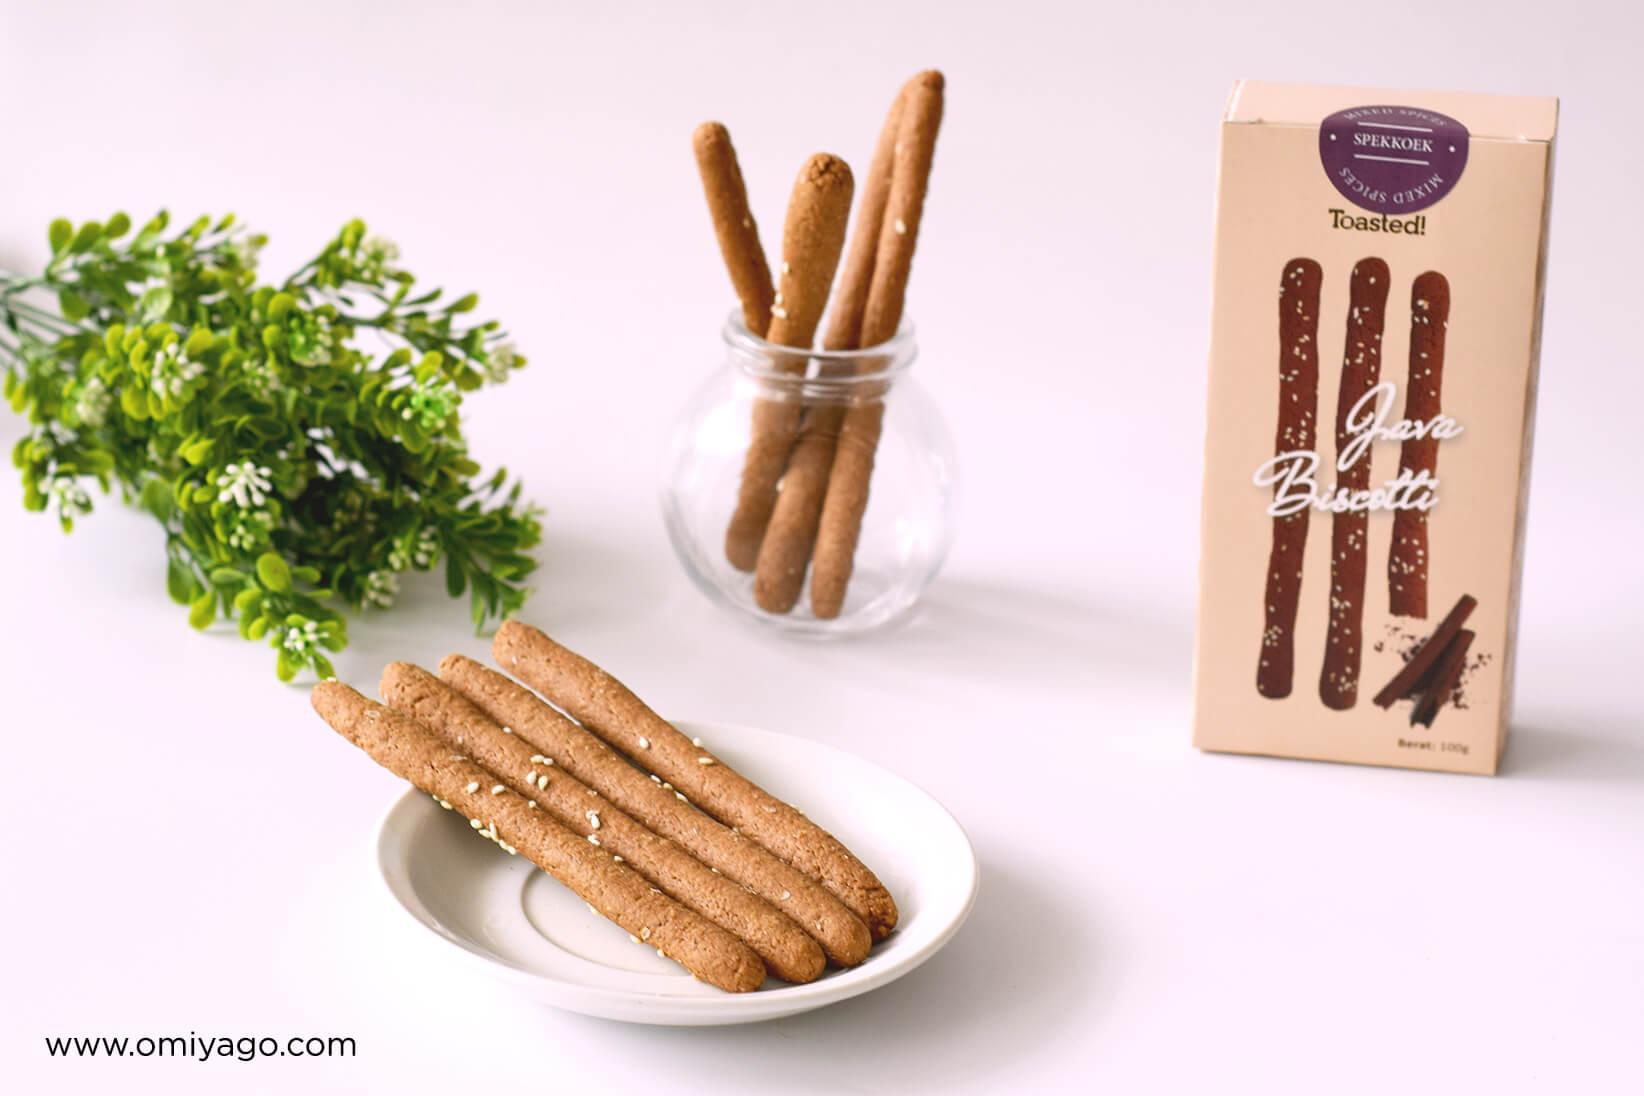 Java_Biscotti_Toasted_Mixed